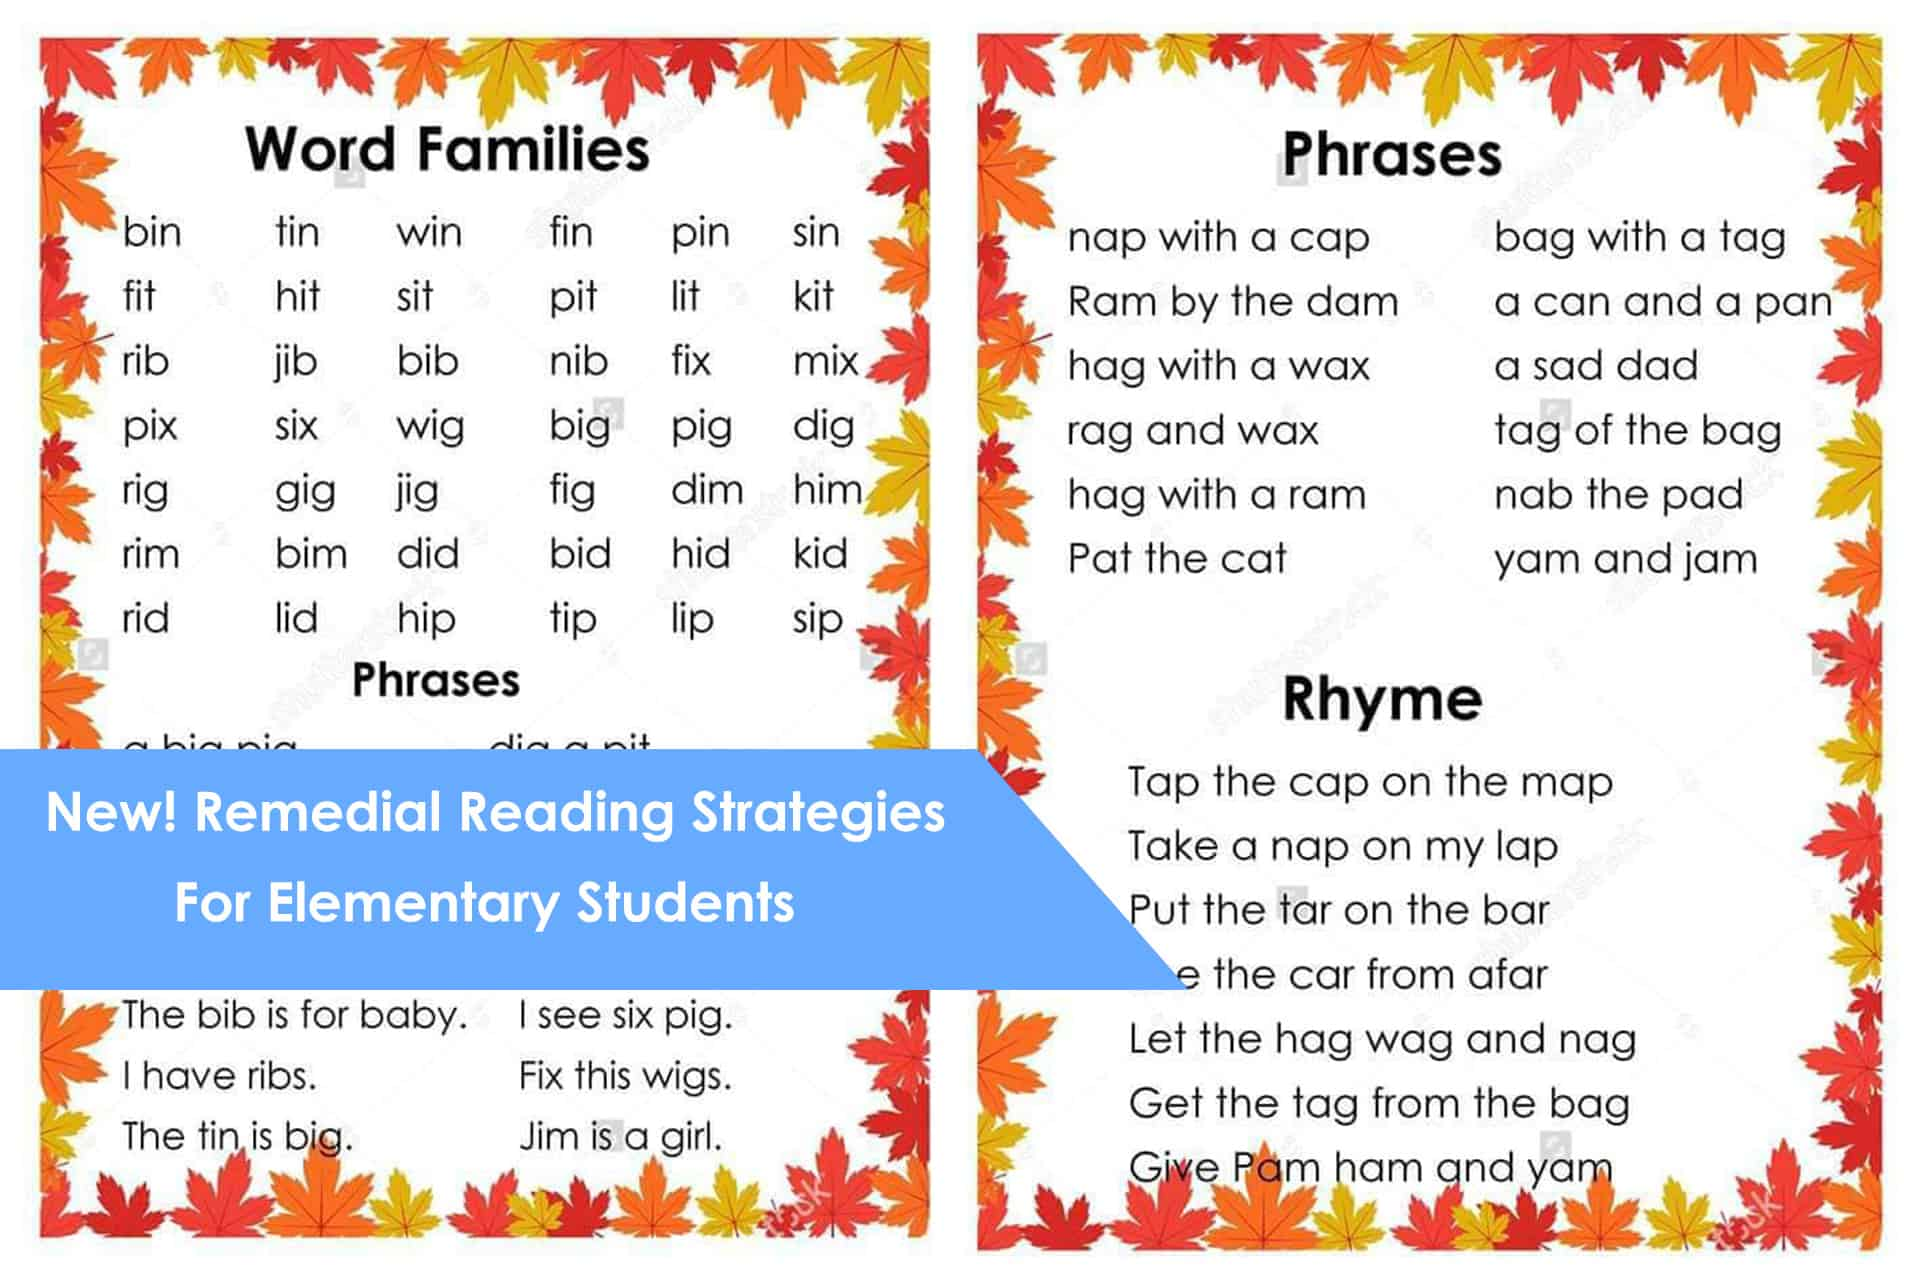 New Remedial Reading Strategies For Elementary Students